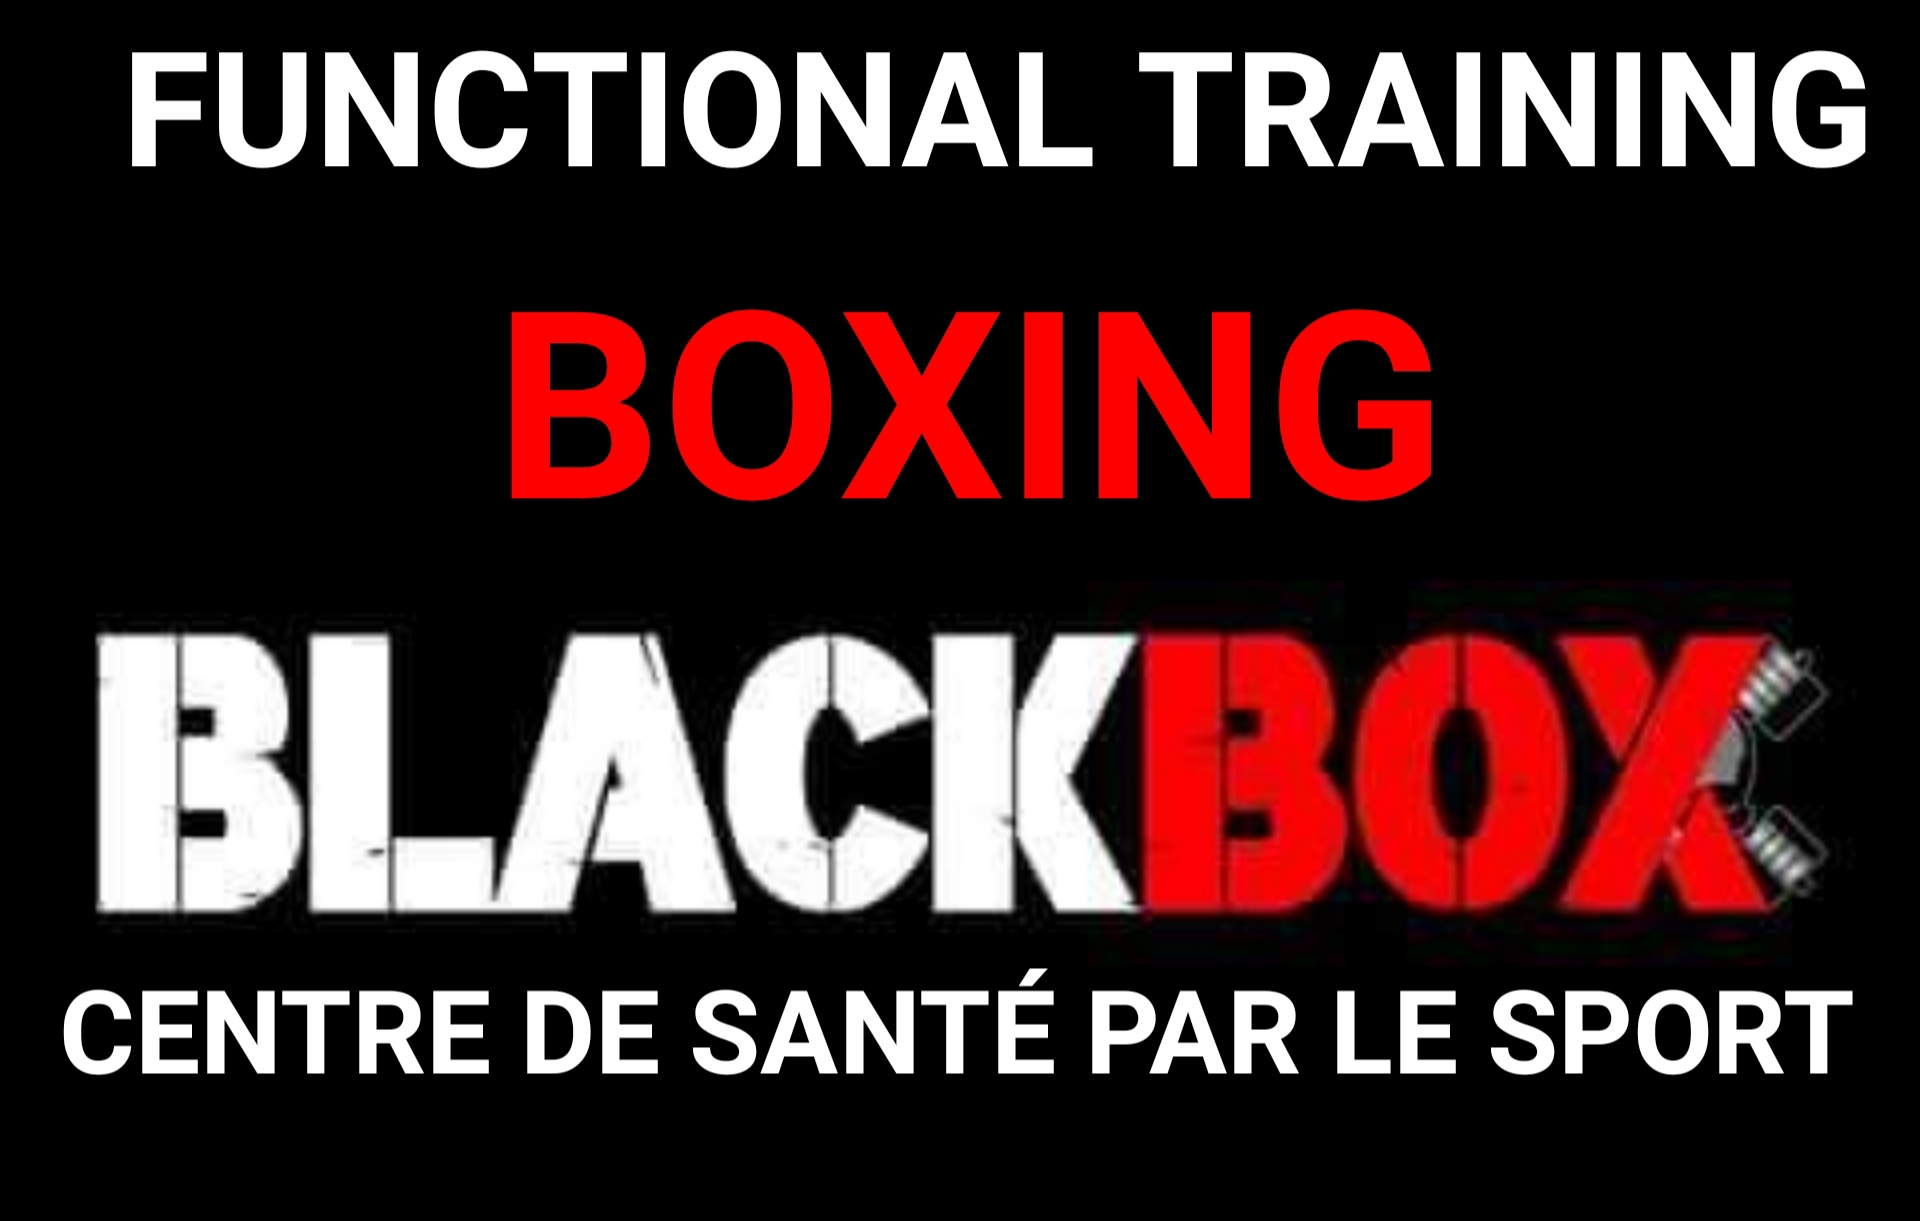 FUNCTIONAL TRAINING BOXING